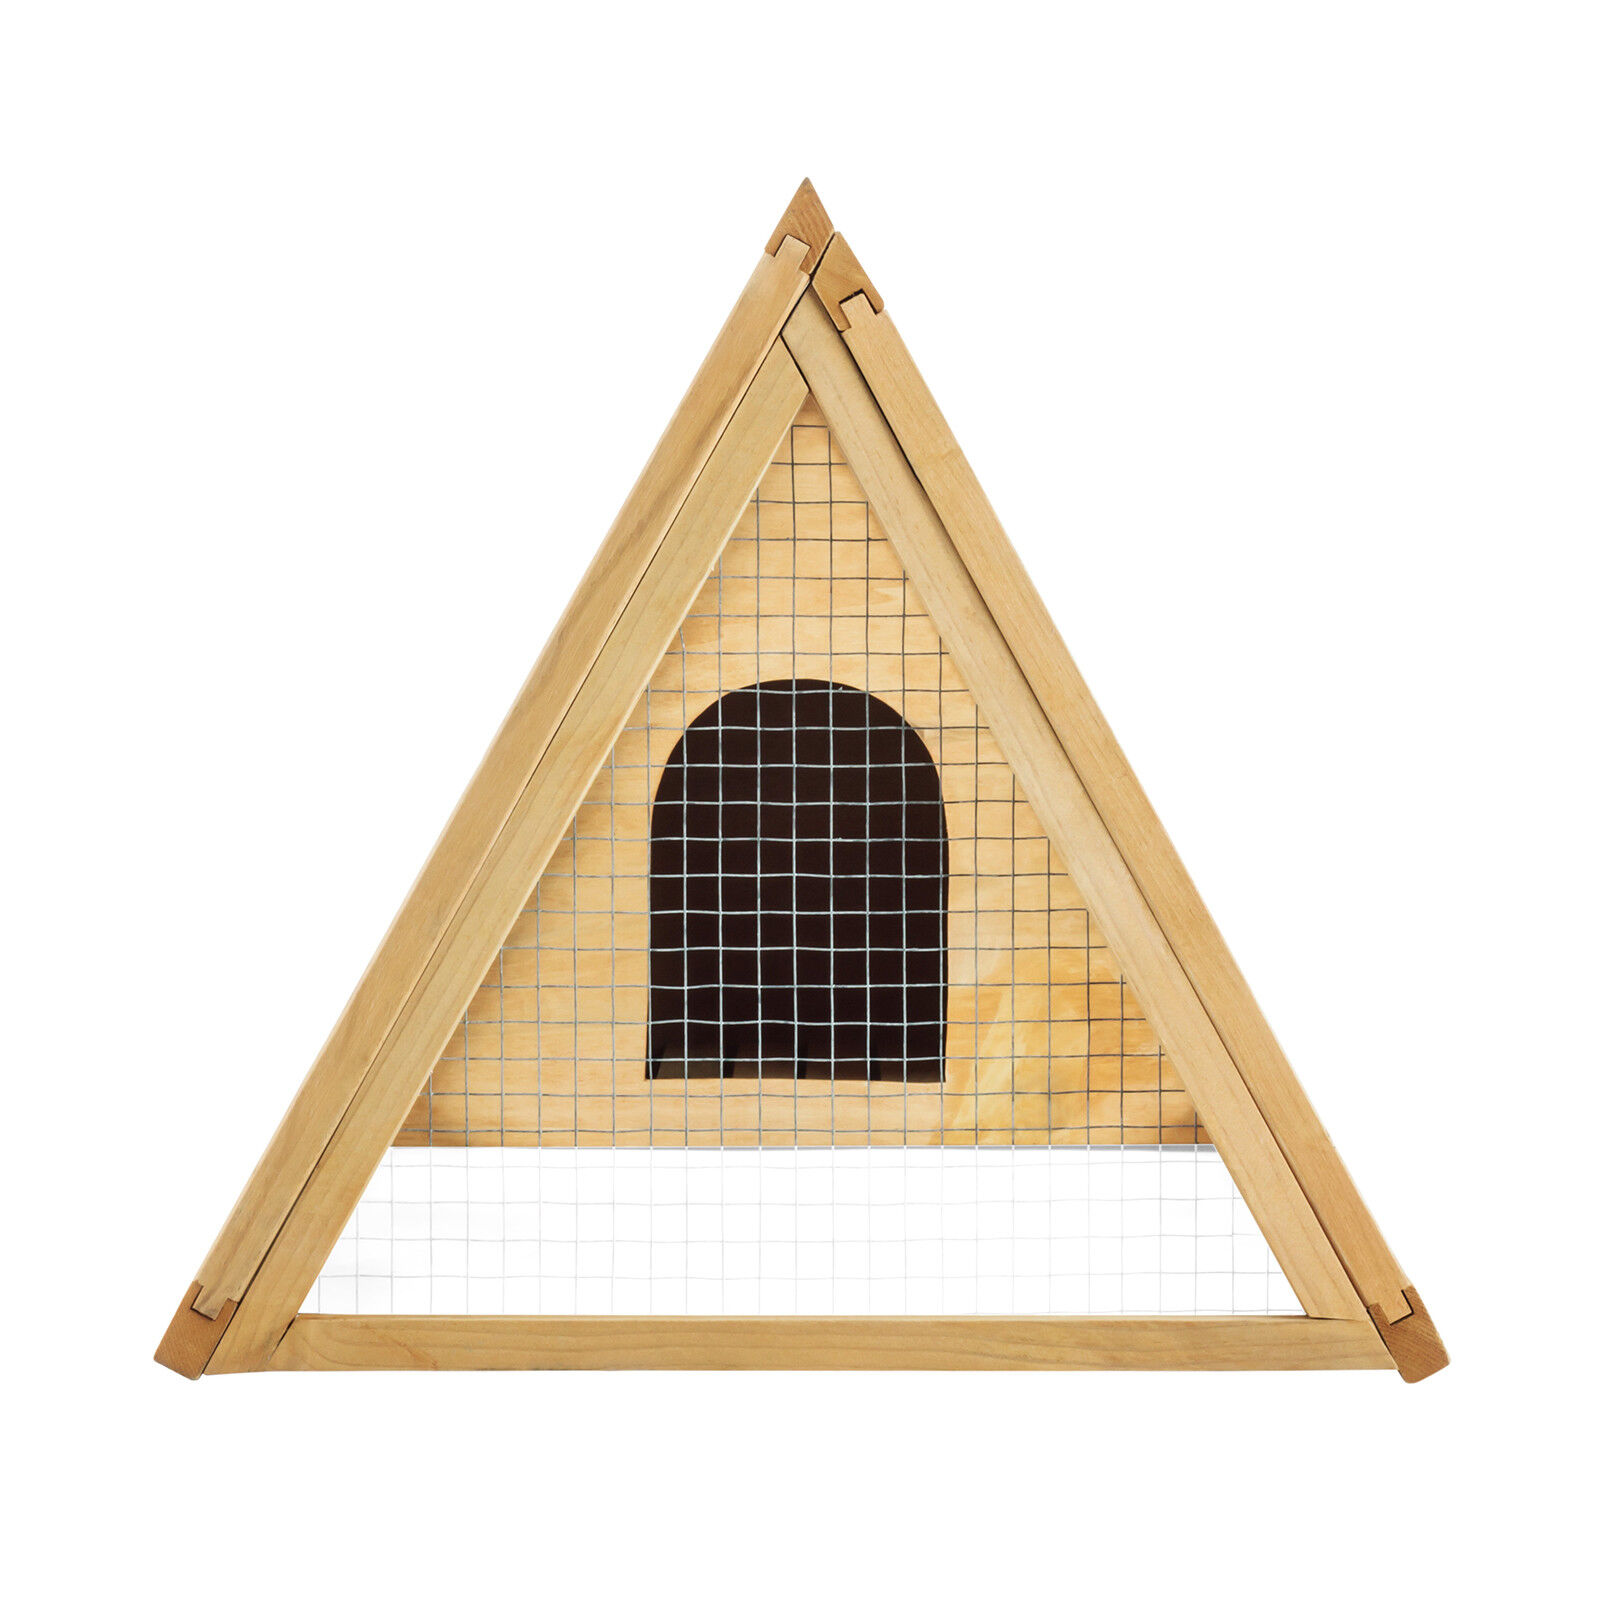 Wooden Chicken Coop A-Frame Rabbit Hutch Cage Small Animal Pet House Run Outdoor